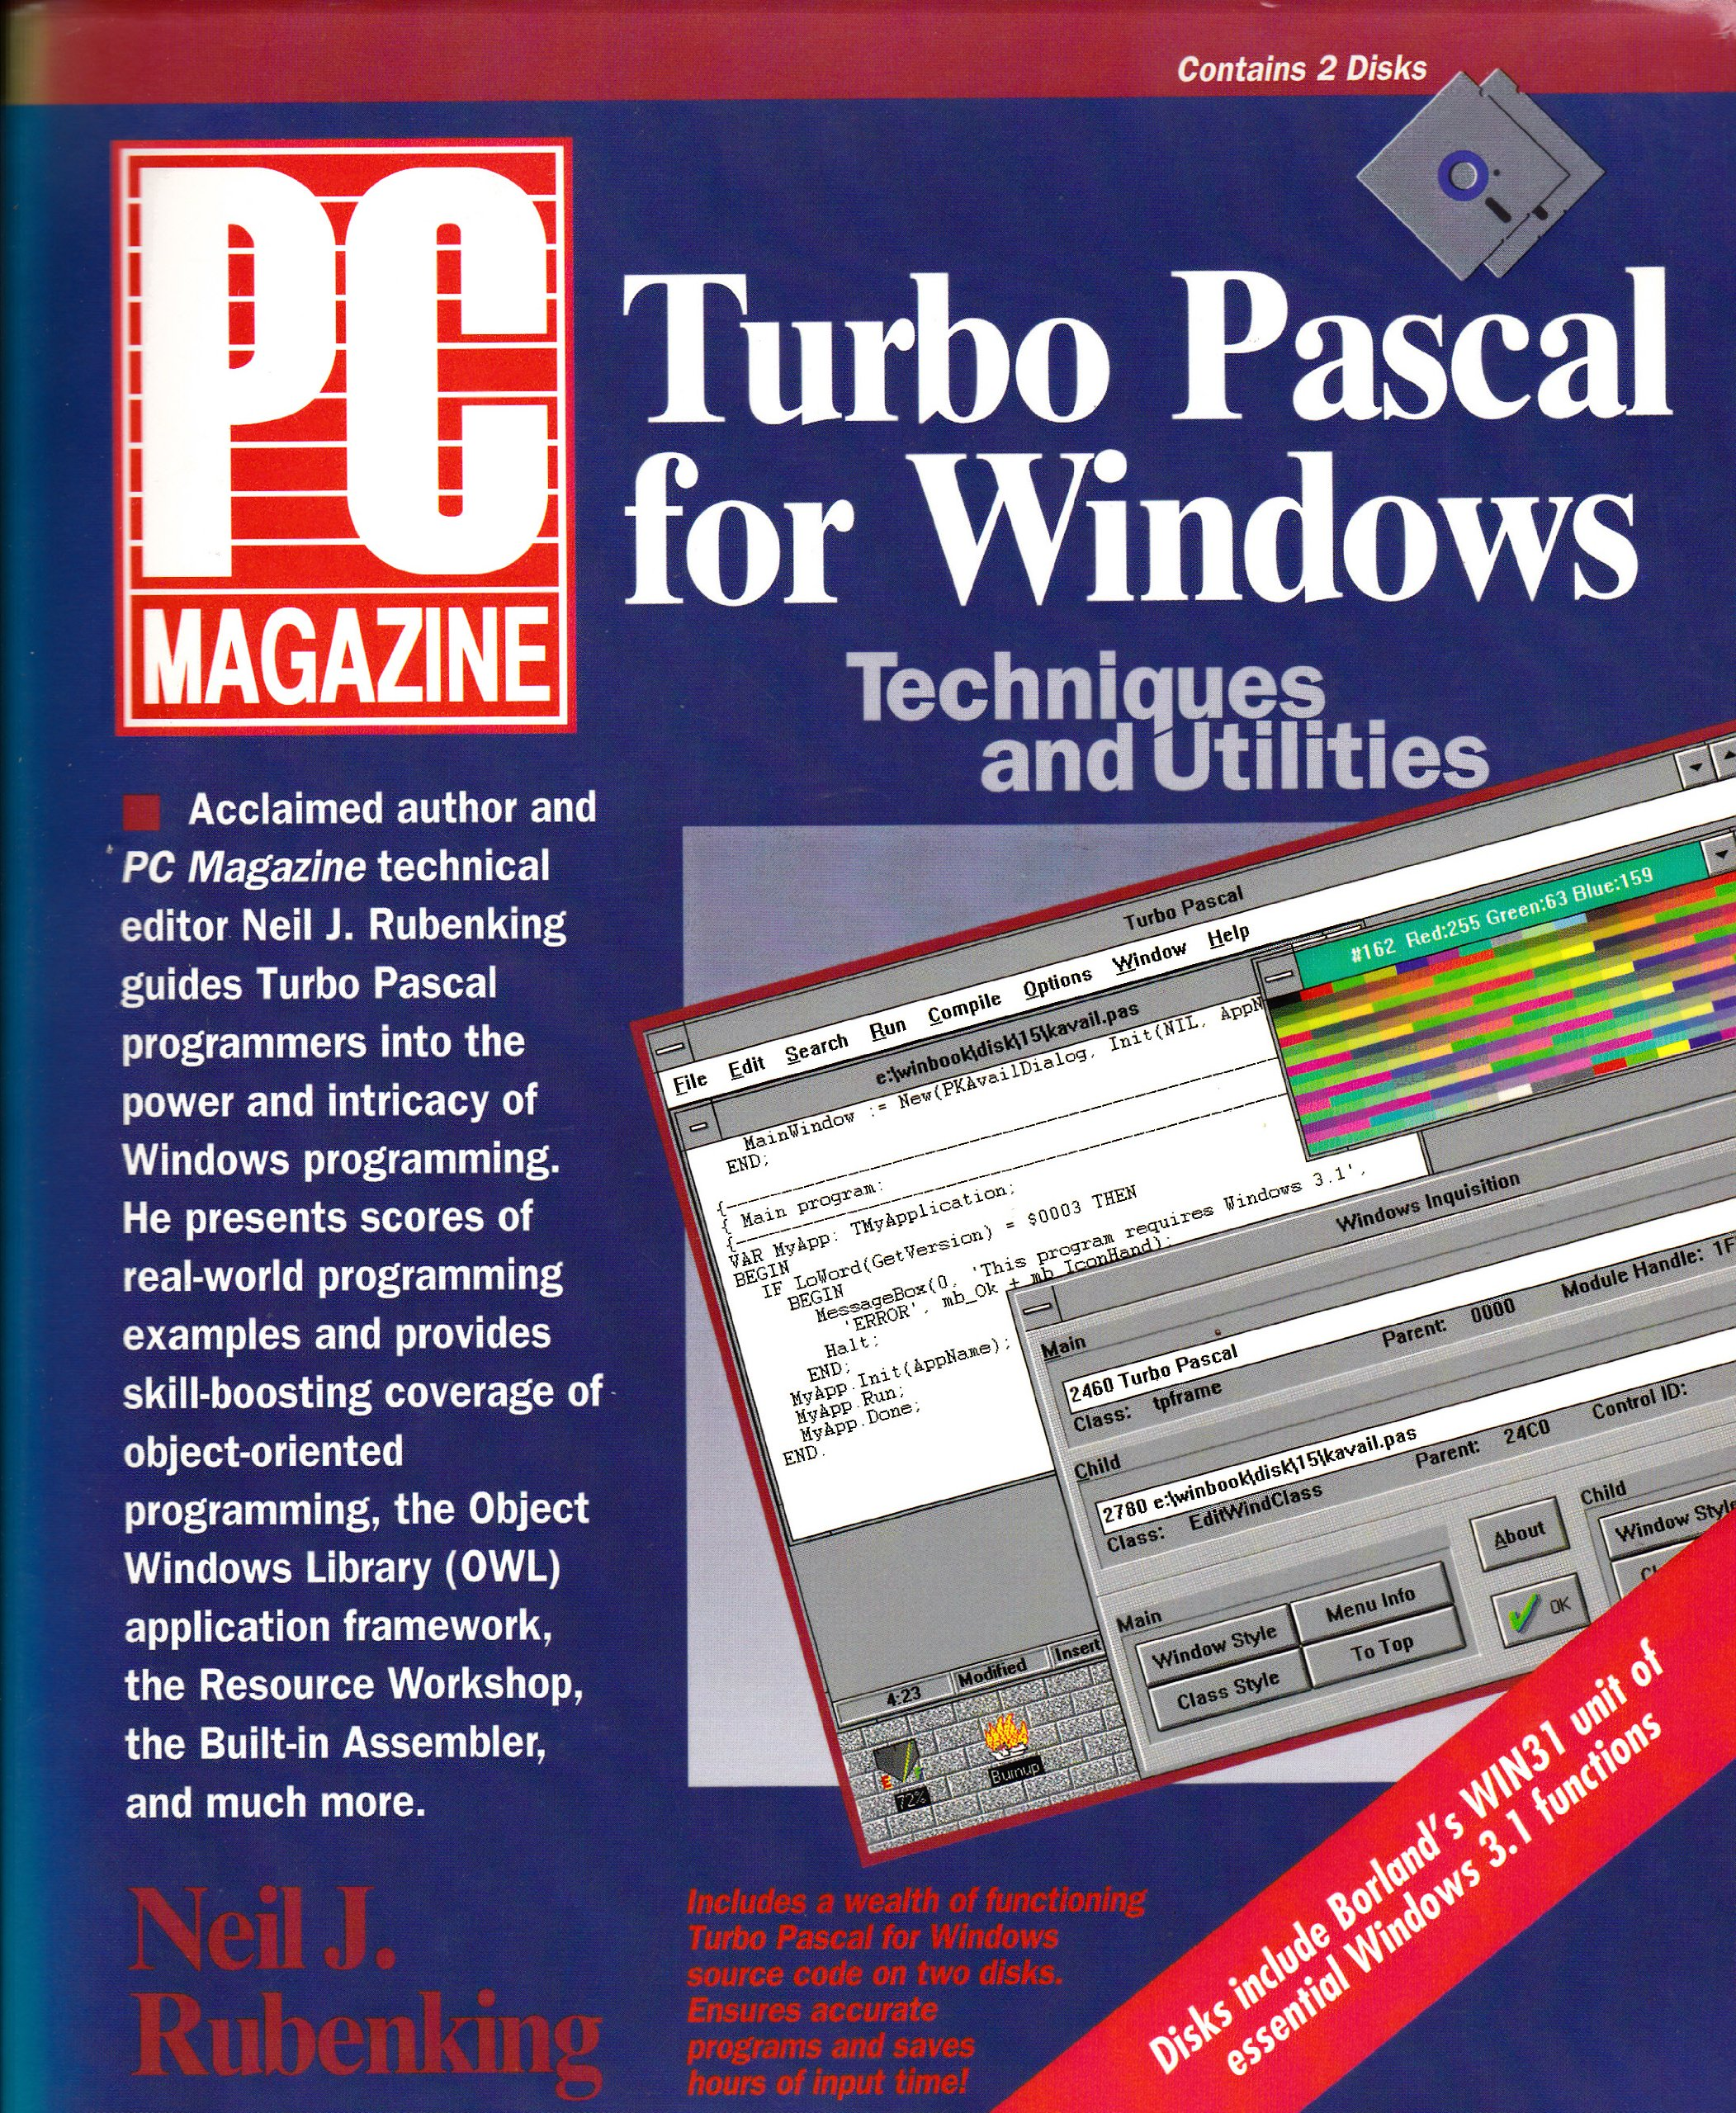 PC Magazine Turbo Pascal for Windows Techniques and Utilities/Book and Disks: Neil J. Rubenking: 9781562760359: Amazon.com: Books